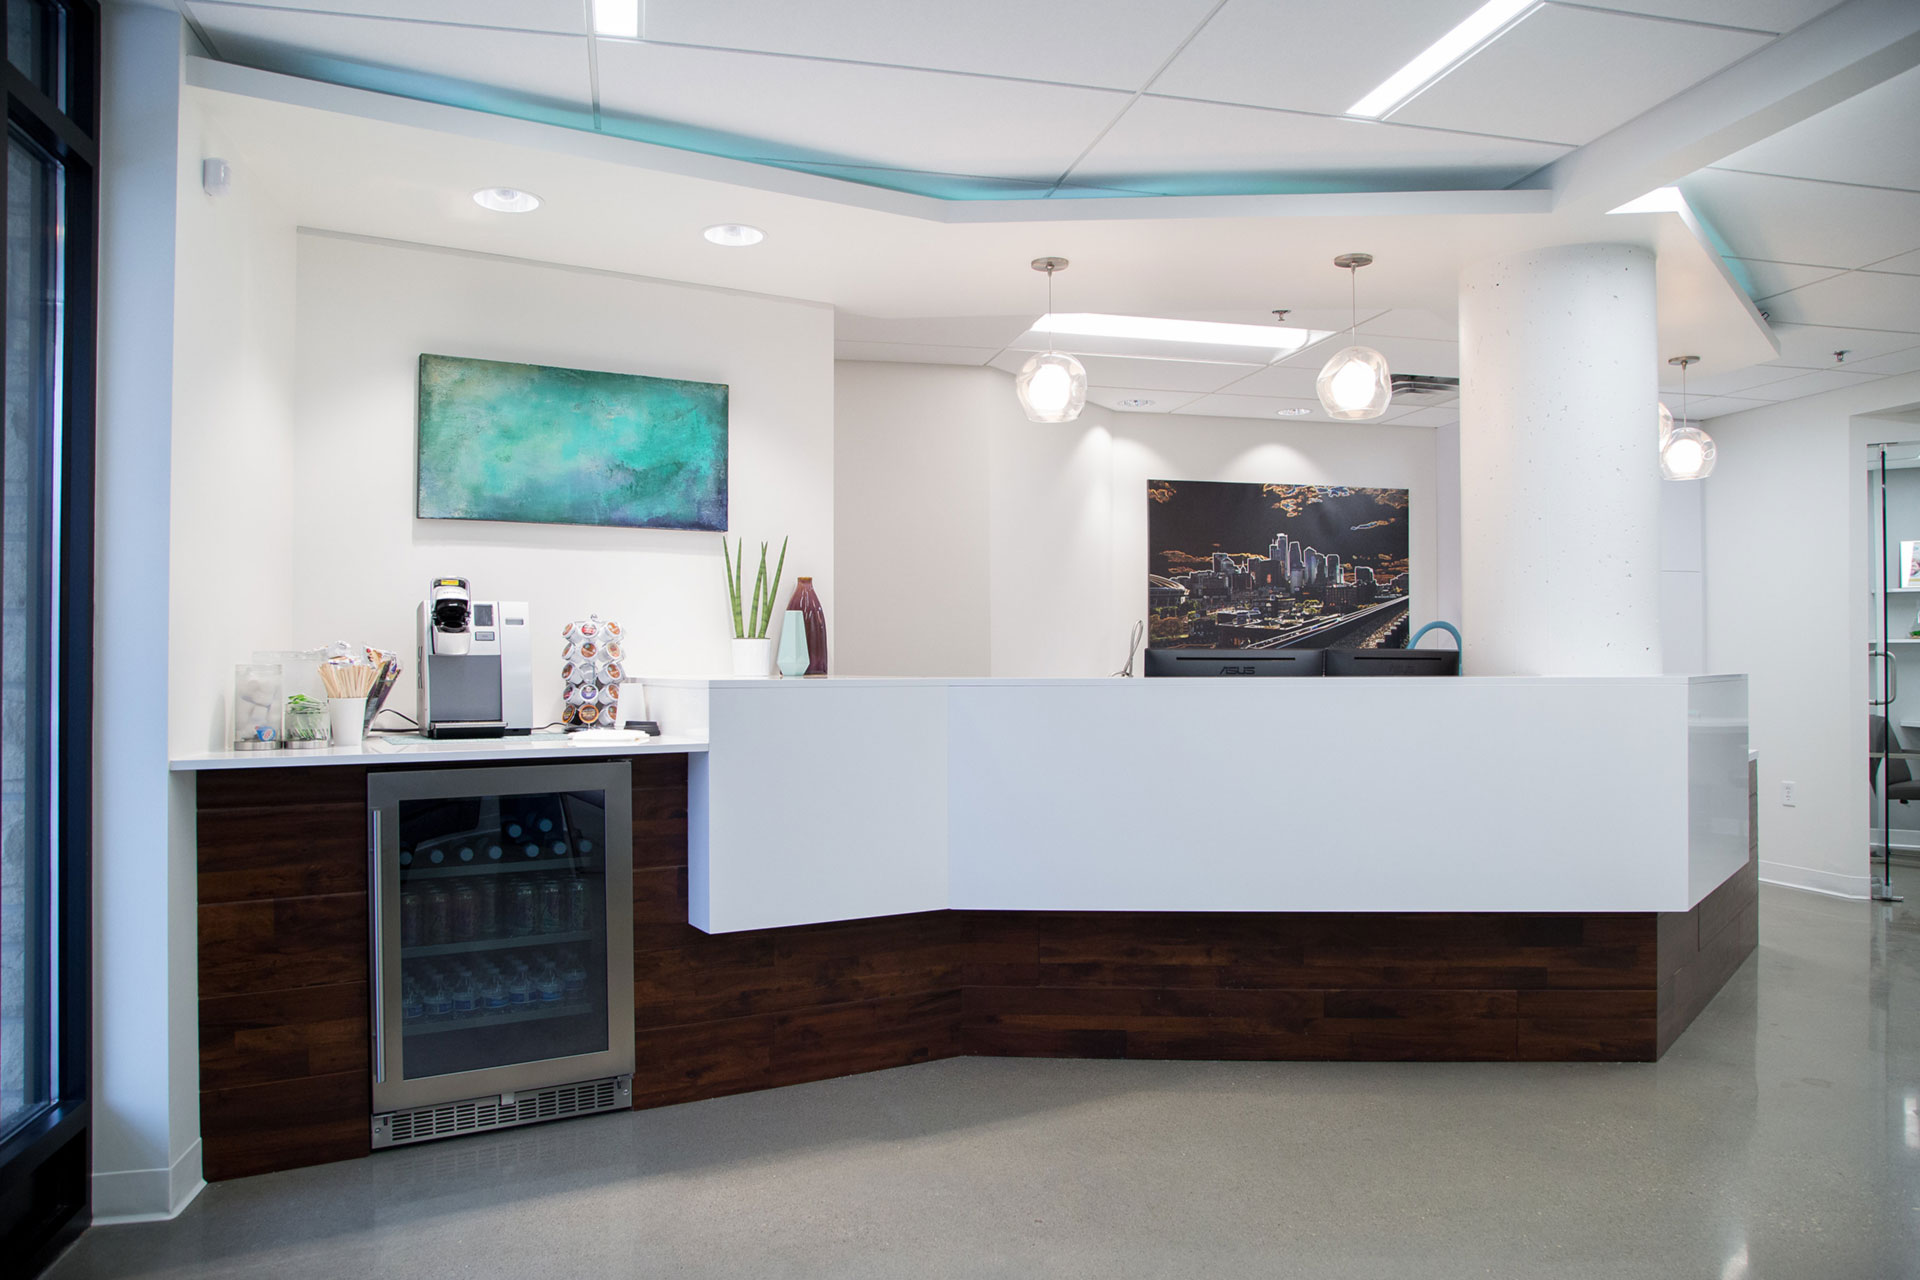 The dental office features snacks, water, and a coffee machine in the sleek, clean waiting area for patients.